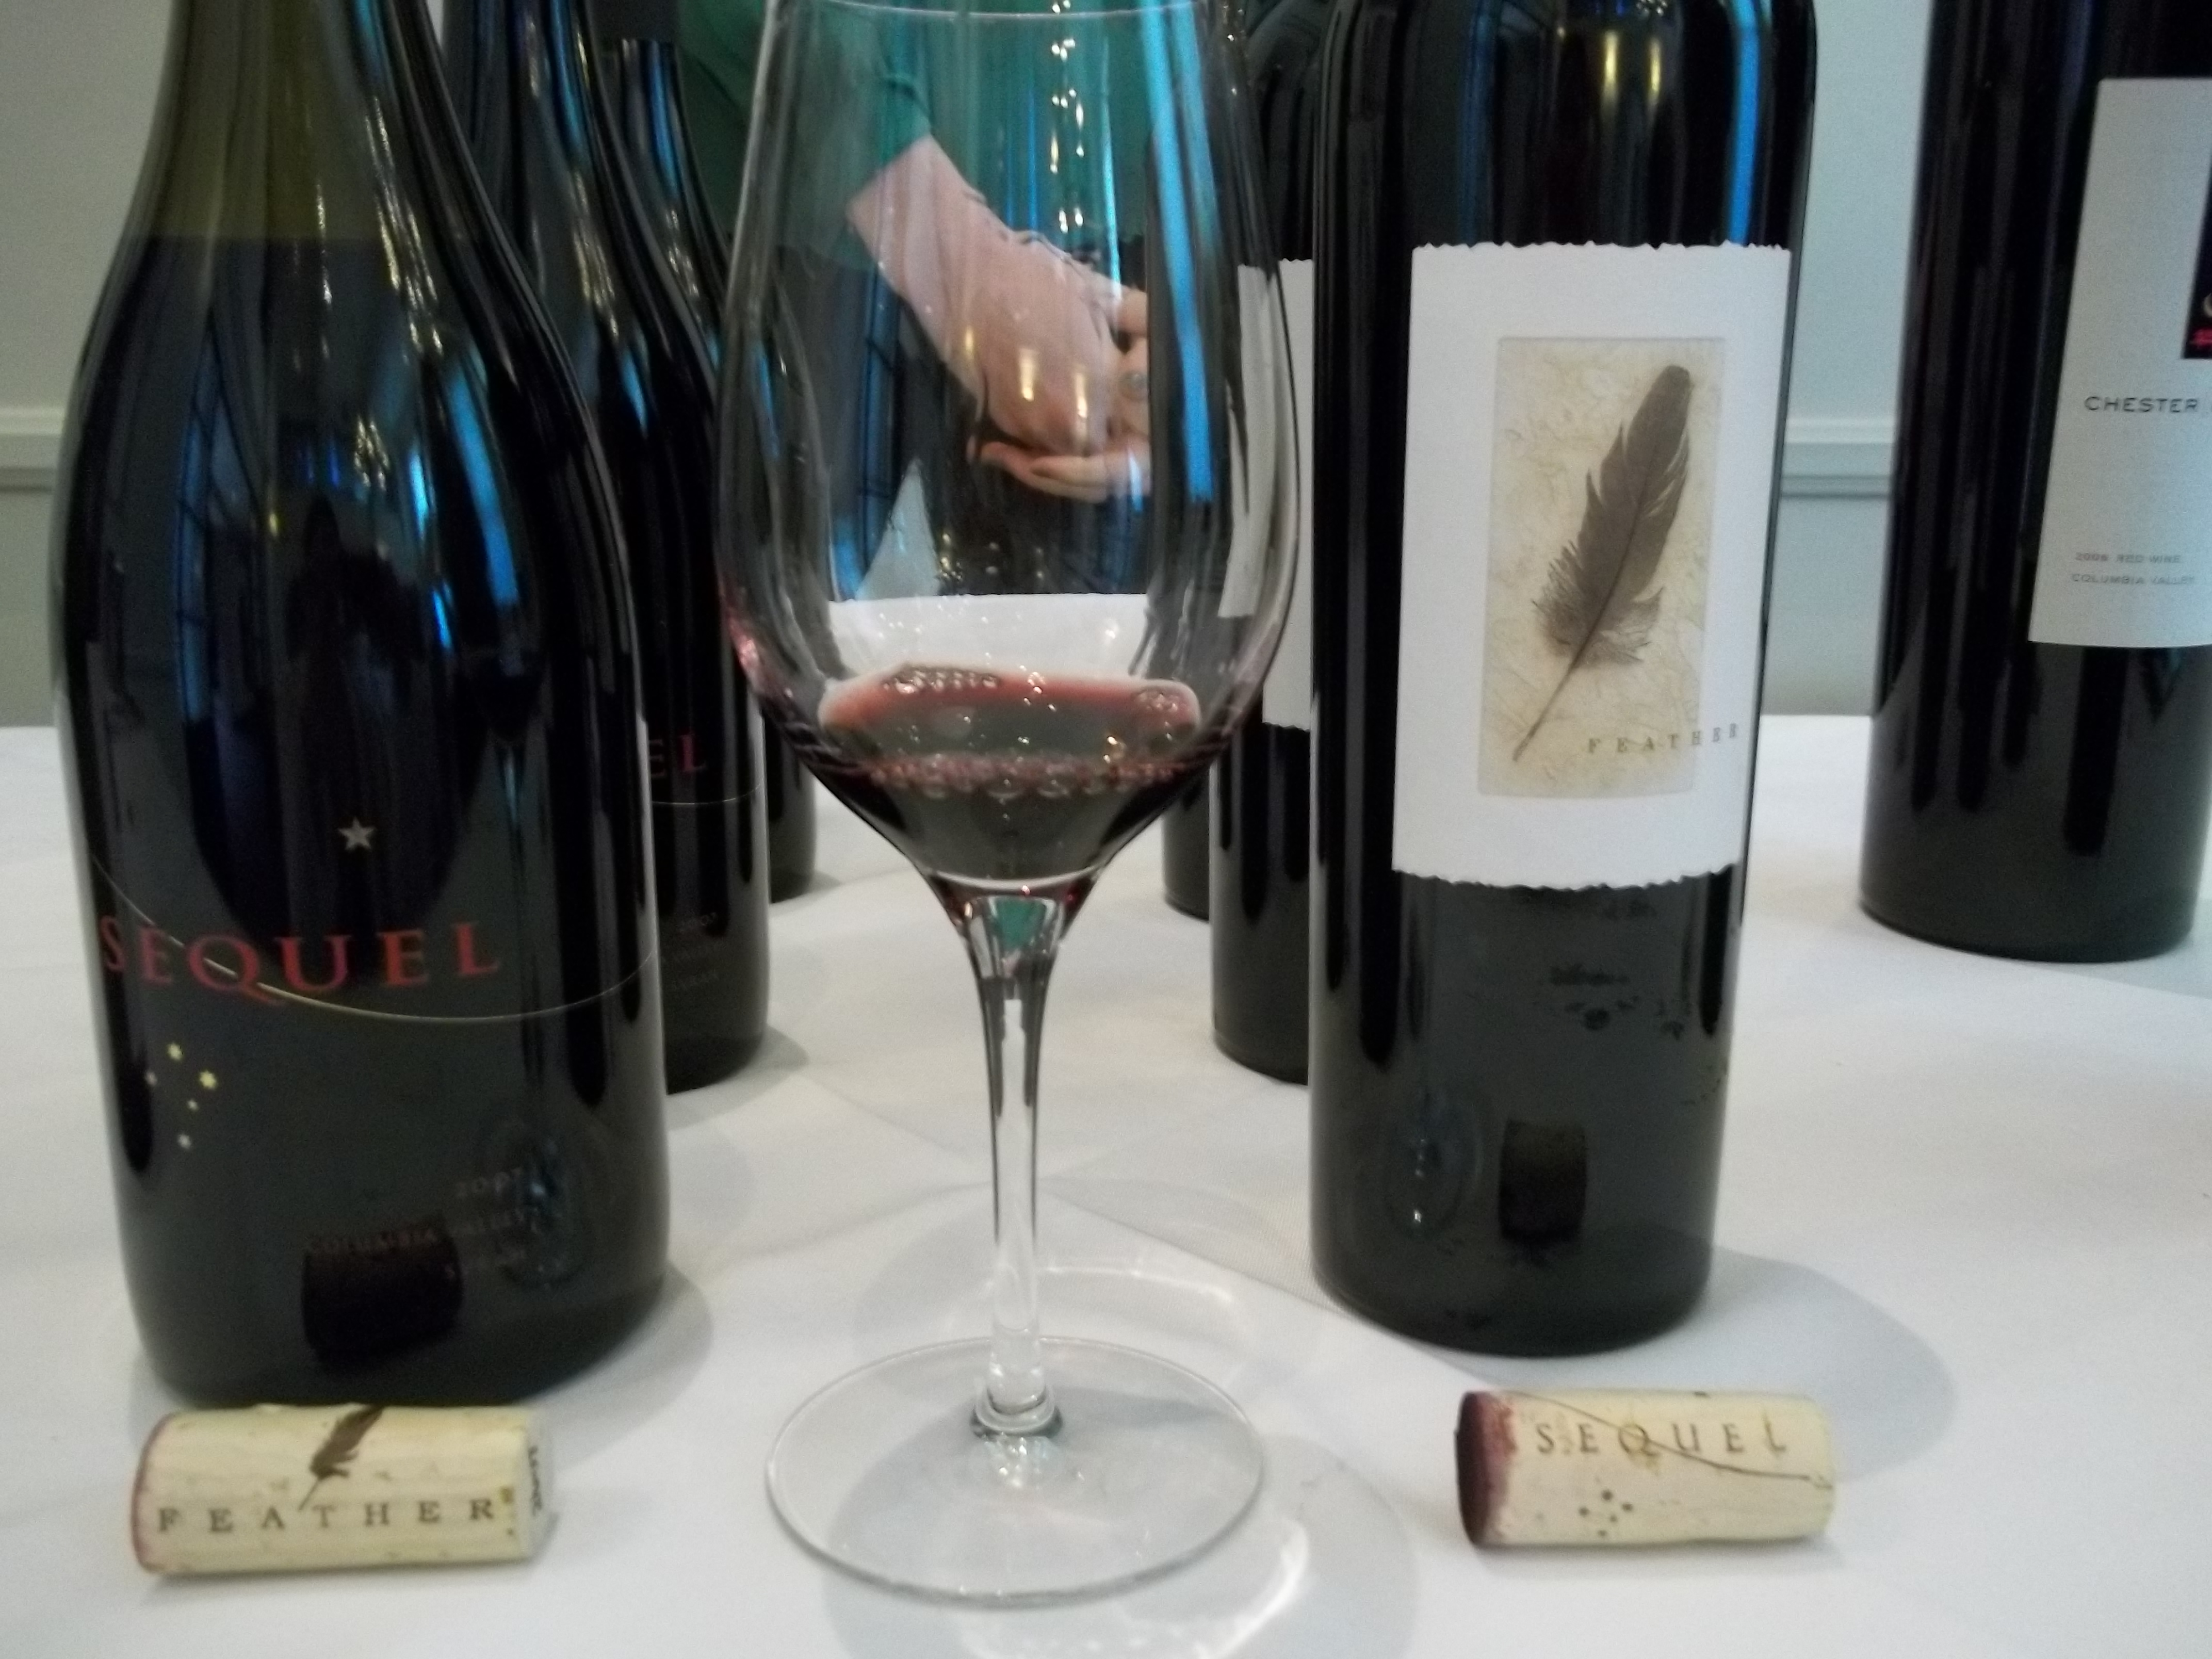 Wine tasting - Wine tasting, cheese tasting, etc. are good ways to get out, be social, and to have fun together. You can talk about what you think tastes good, and why or why not. Whatever it is that you may be tasting can be great icebreakers for conversation.